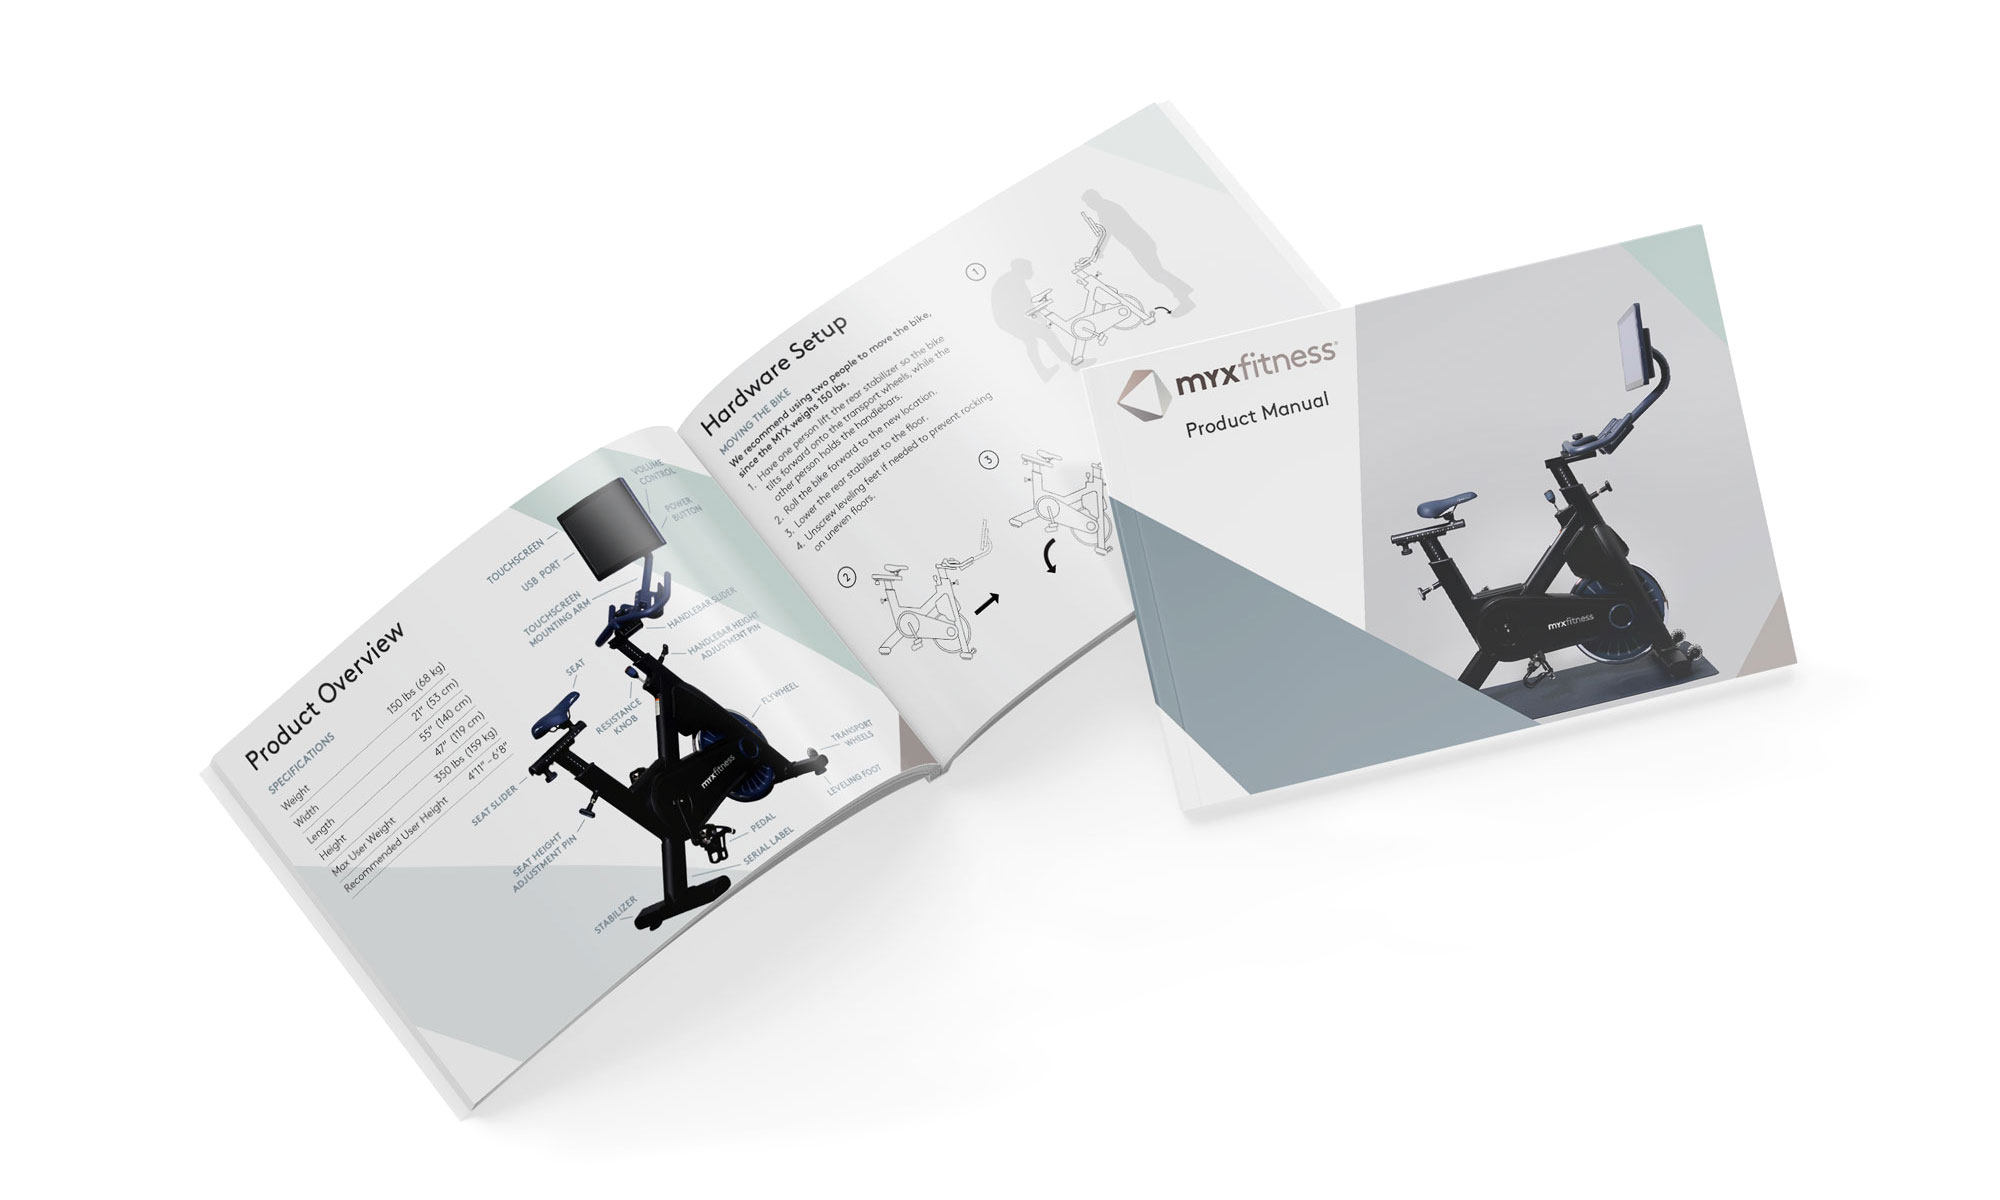 MYXfitness user guide and product information manual